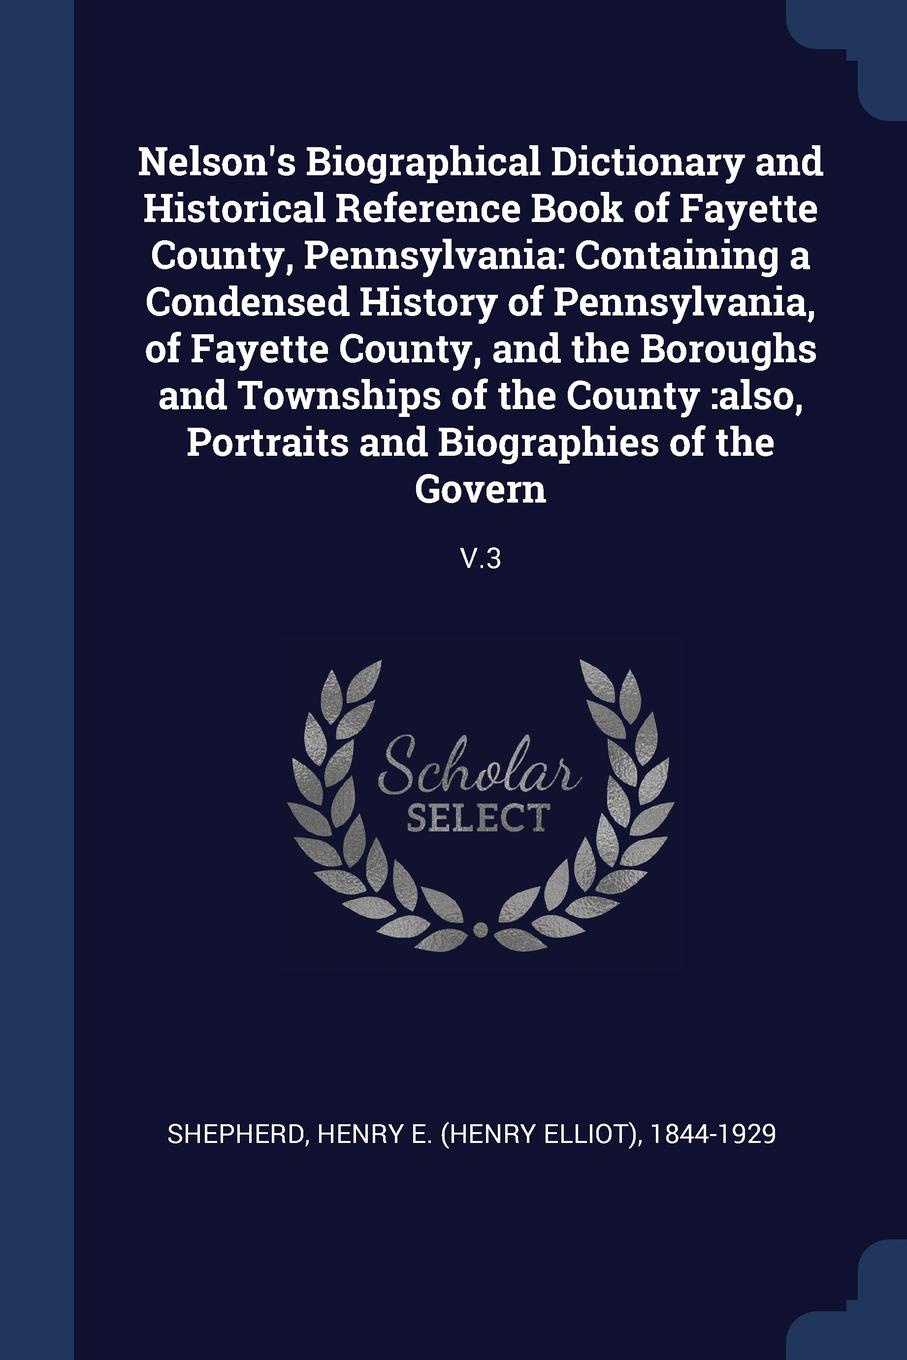 Henry E. 1844-1929 Shepherd Nelsons Biographical Dictionary and Historical Reference Book of Fayette County, Pennsylvania. Containing a Condensed History Pennsylvania, the Boroughs Townships County :also, Portraits Biographies the...